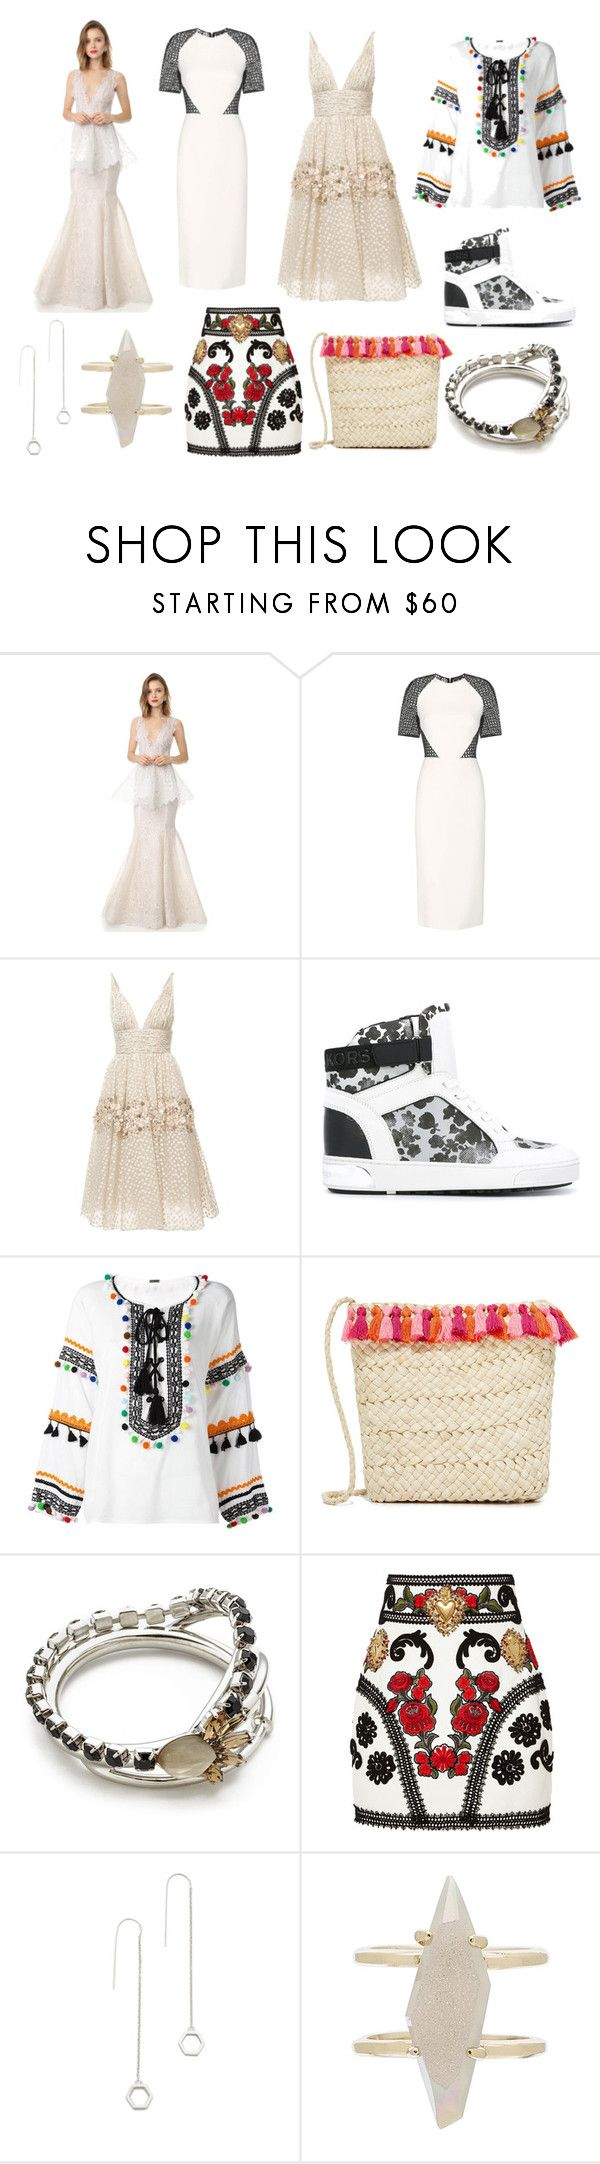 """Pure White.."" by donna-wang1 ❤ liked on Polyvore featuring Marchesa, David Koma, Carolina Herrera, MICHAEL Michael Kors, Dodo Bar Or, Hat Attack, Marni, Dolce&Gabbana, Eddie Borgo and Kendra Scott"